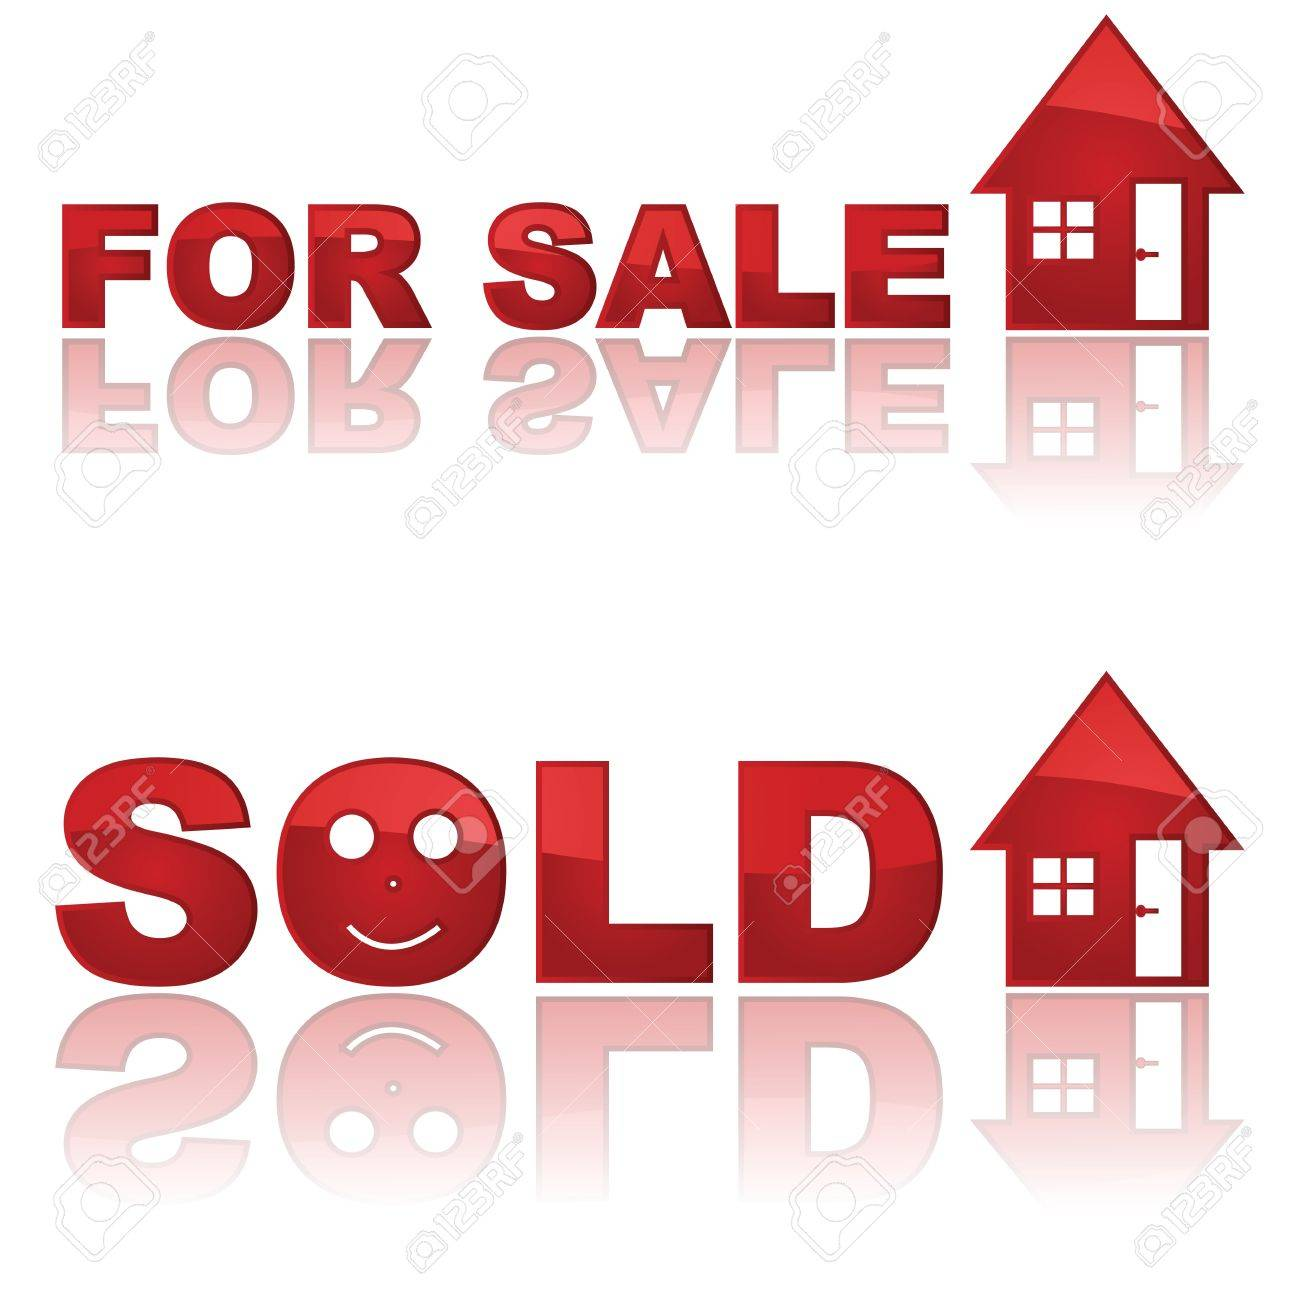 Set of two glossy real estate signs showing a house for sale and another one sold Stock Vector - 9864322